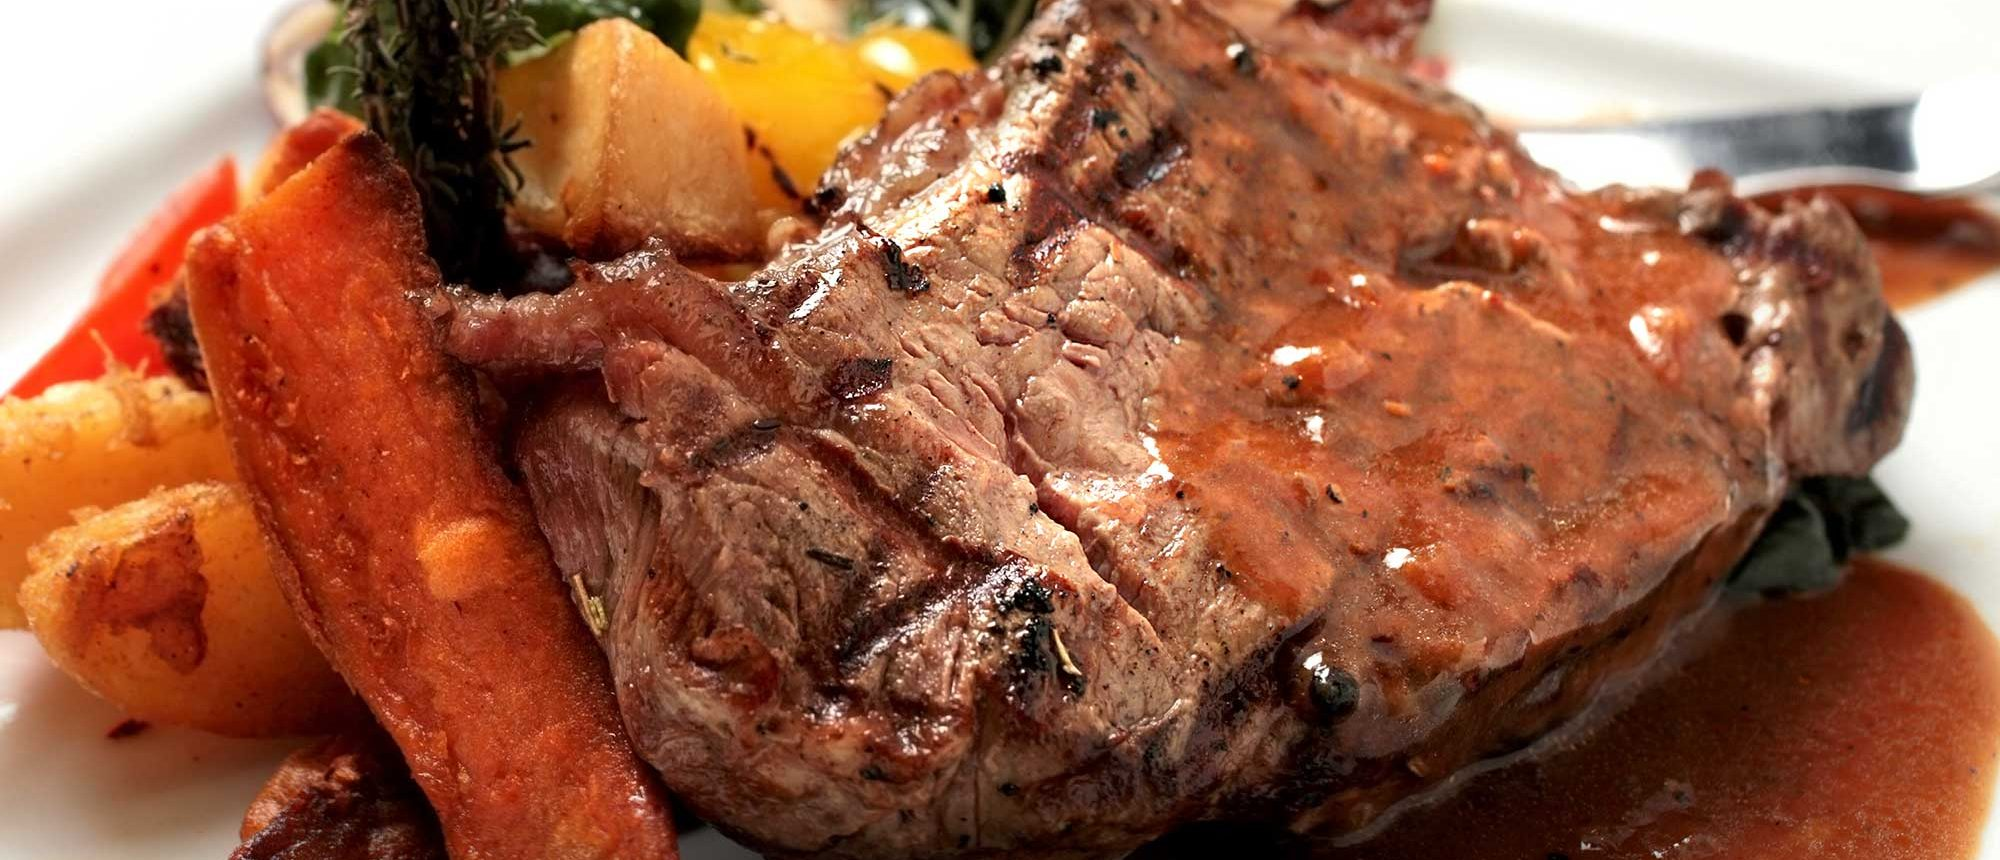 Beef steak served with barbecue sauce.